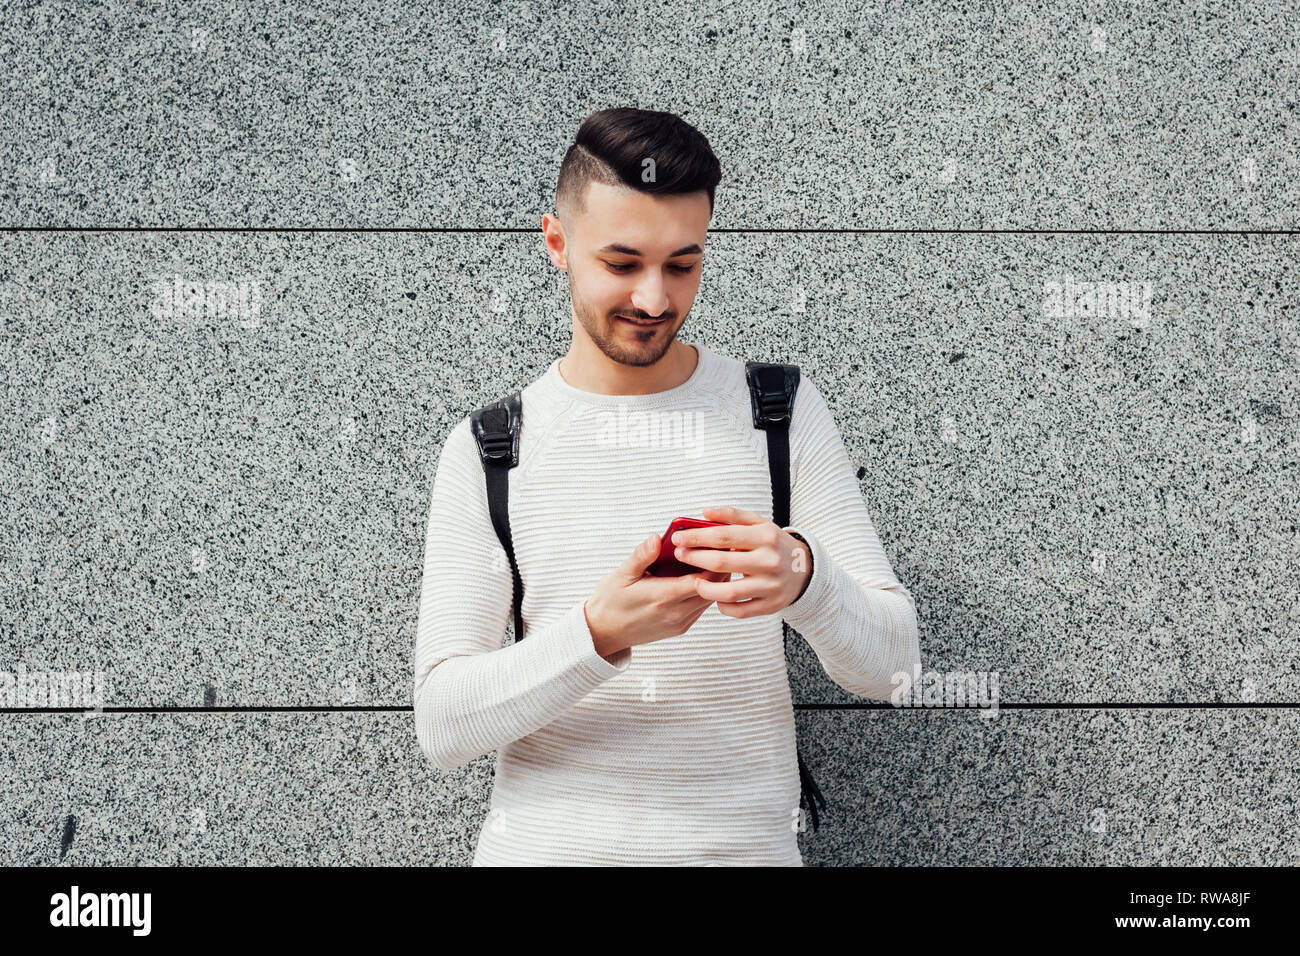 Arabian student with backpack using smartphone outside. Smiling man typing message by the wall after classes. Nowaday communication - Stock Image